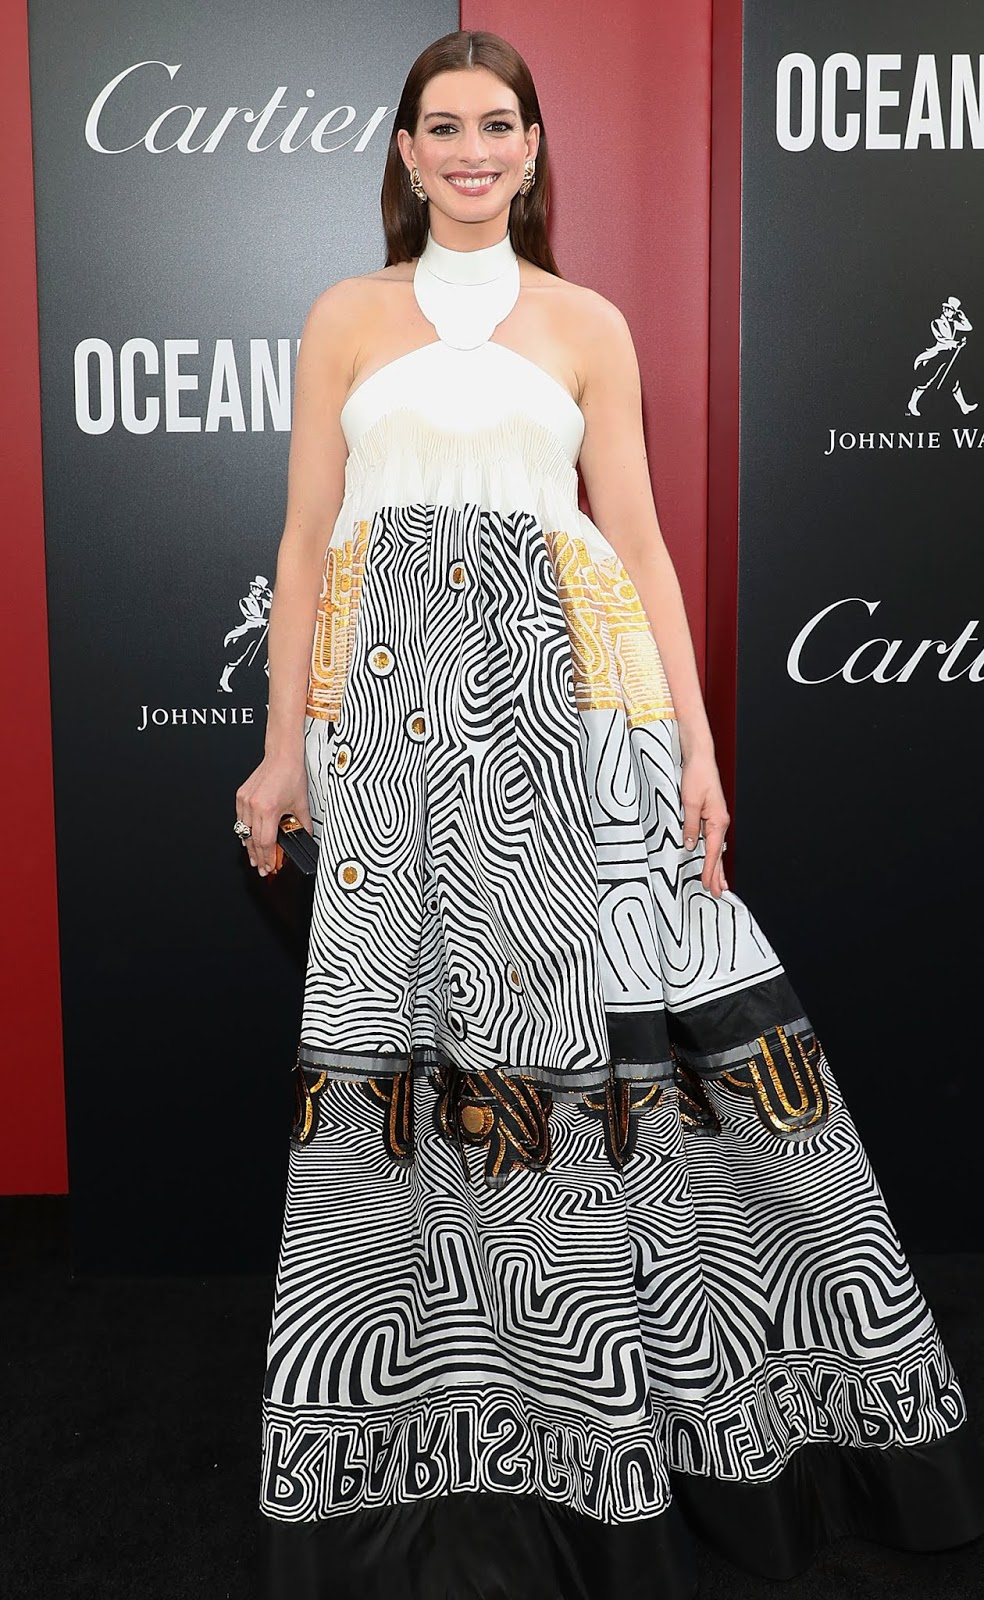 très chic!: Celebrity Style: Anne Hathaway wears a graphic halter ...